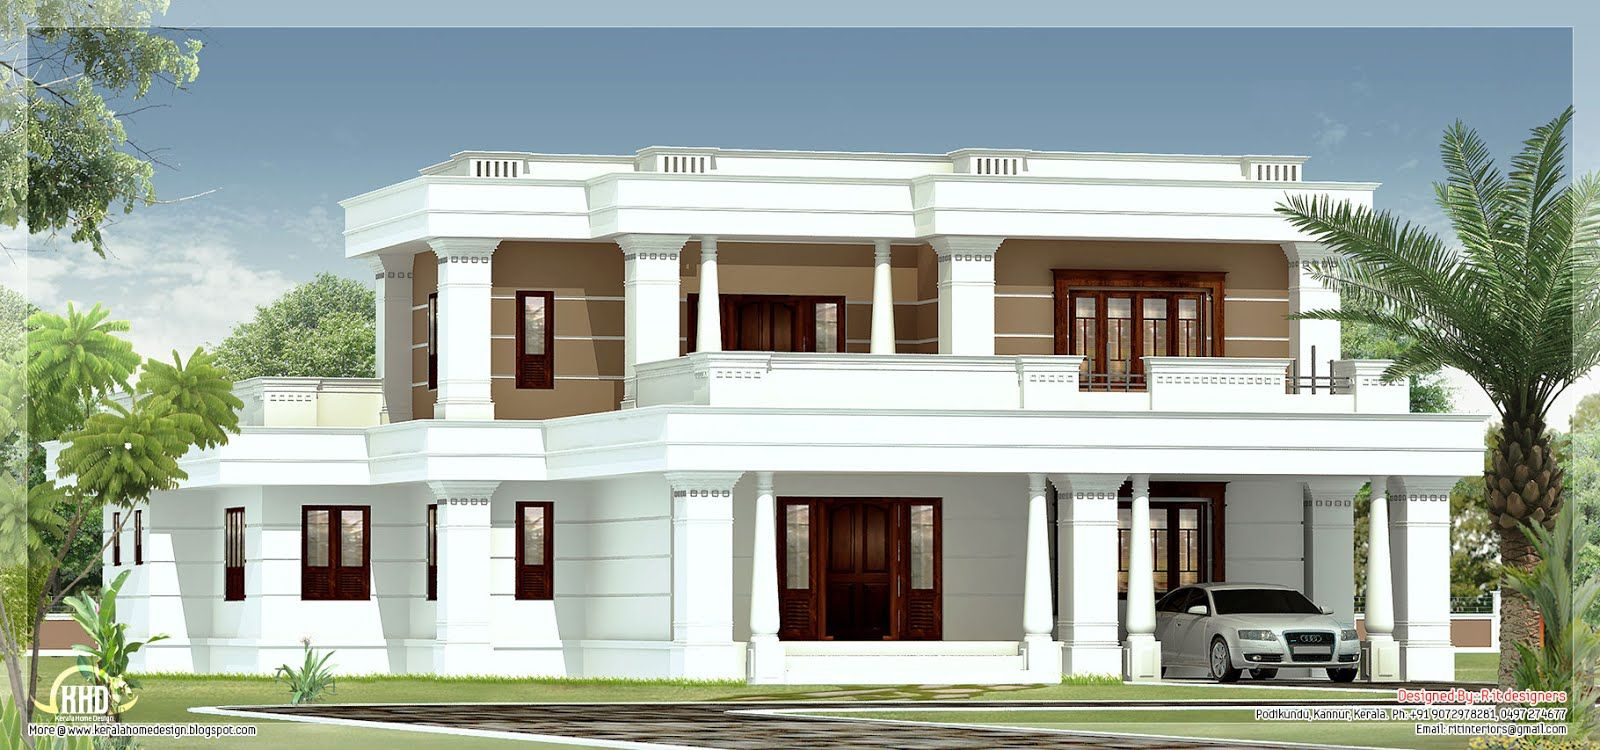 1000+ images about Kerala flat roofs on Pinterest - ^